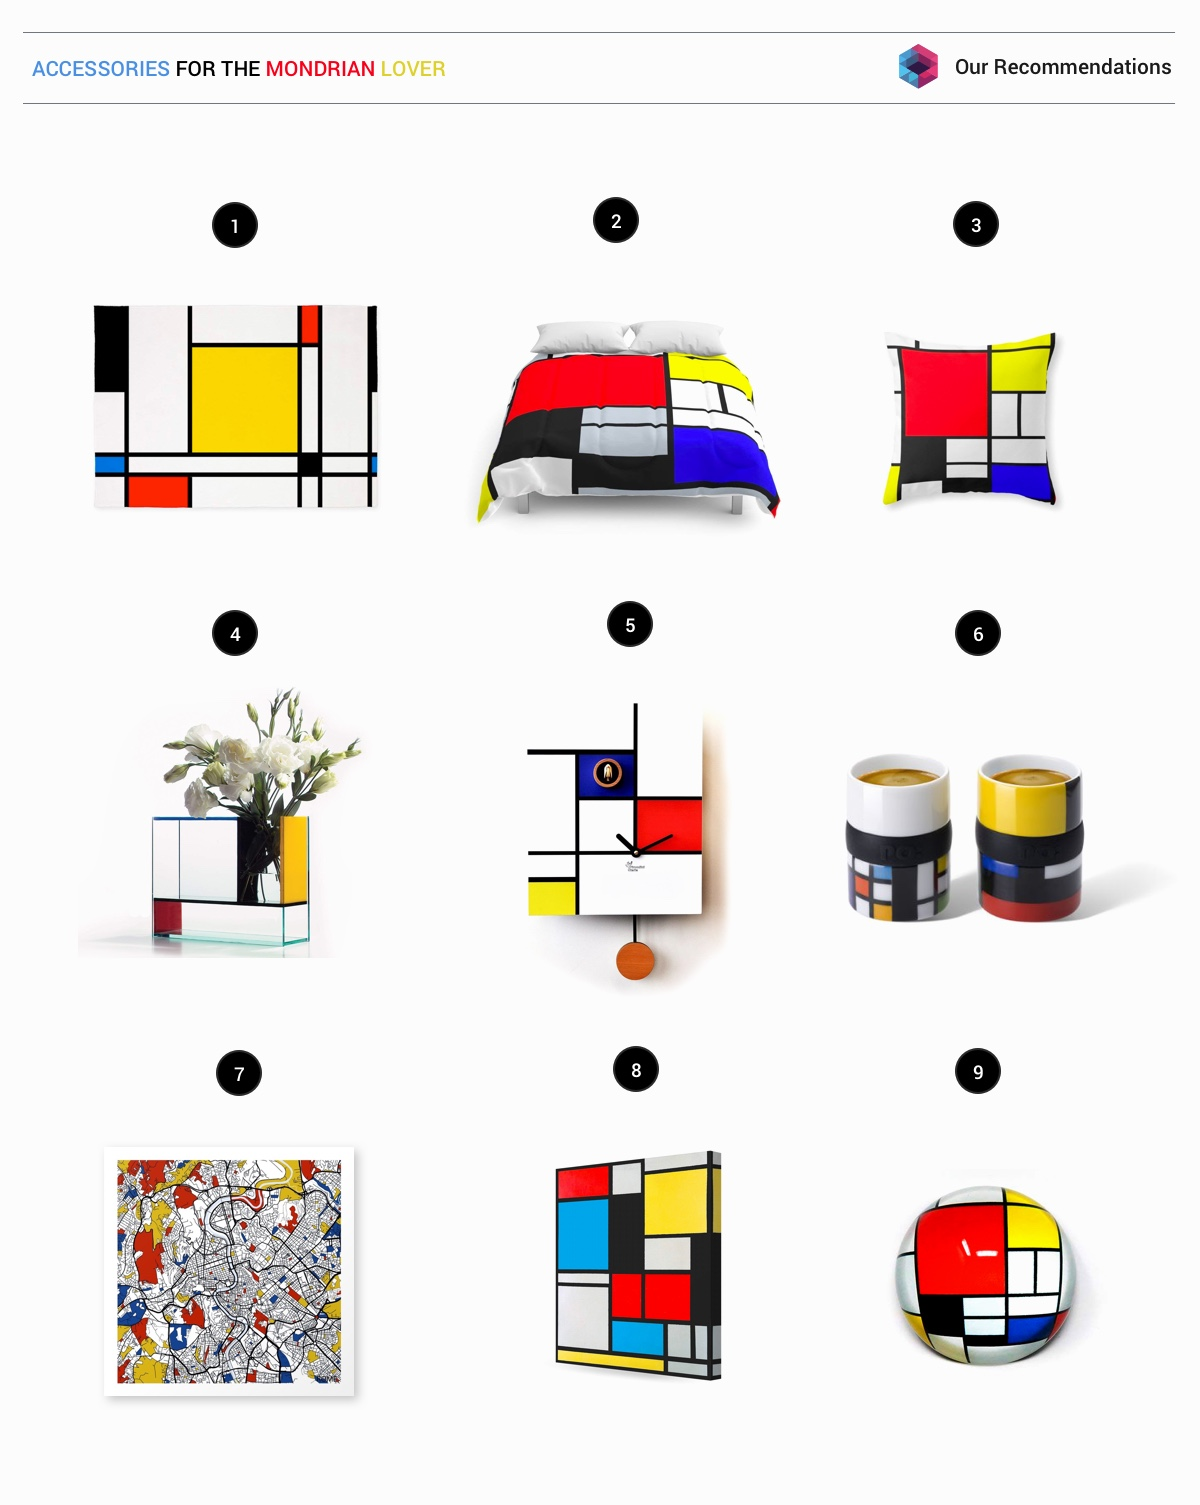 Piet Mondrian Inspired Interior Design To Give Your Home The De Stijl Flair images 48